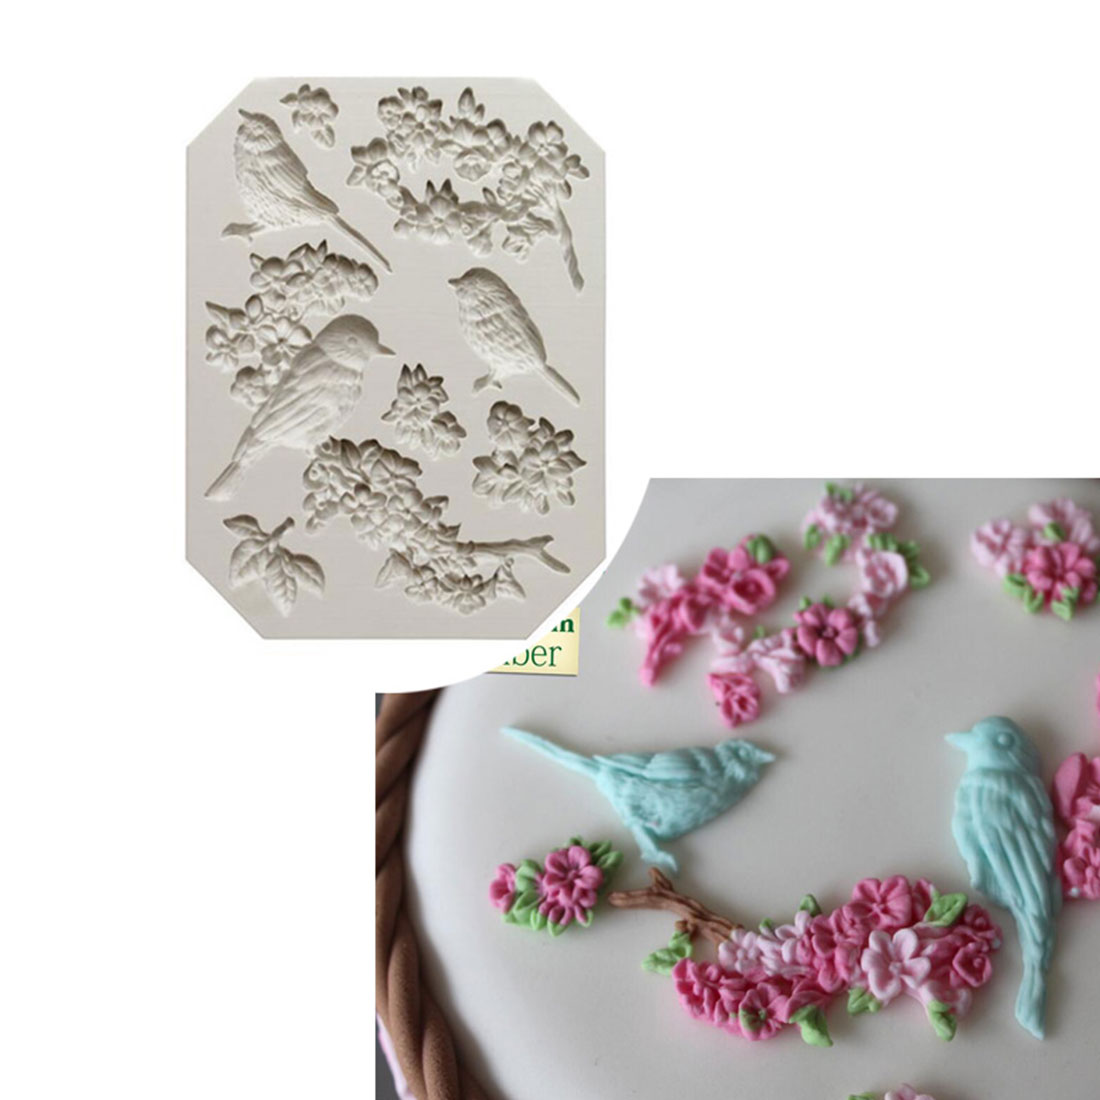 Top Sale Sugarcraft Bird And Flower Silicone Mold Fondant Mold Cake Decorating Tools Chocolate Gumpaste Mold